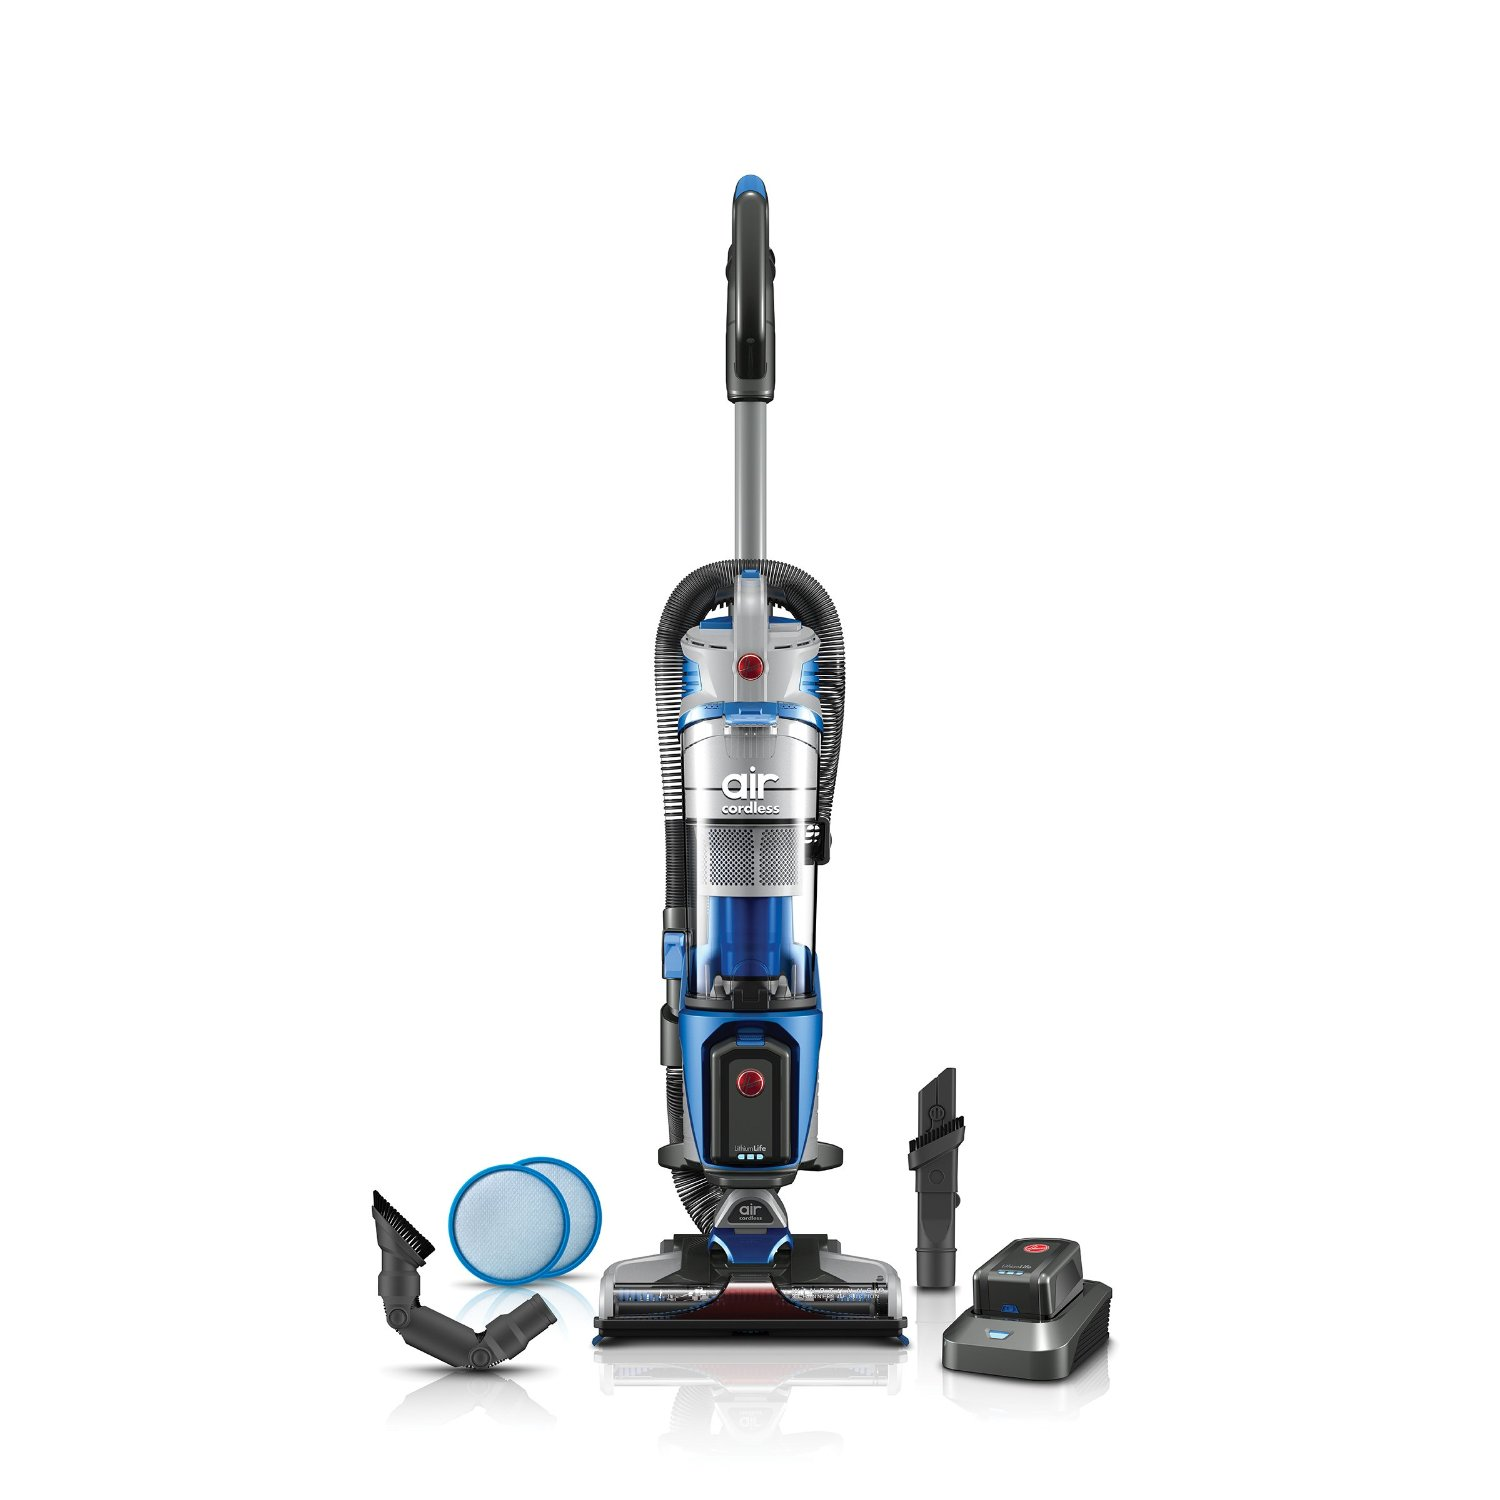 Hoover Air Cordless Lift Bagless Upright Cordless Vacuum Removable Canister